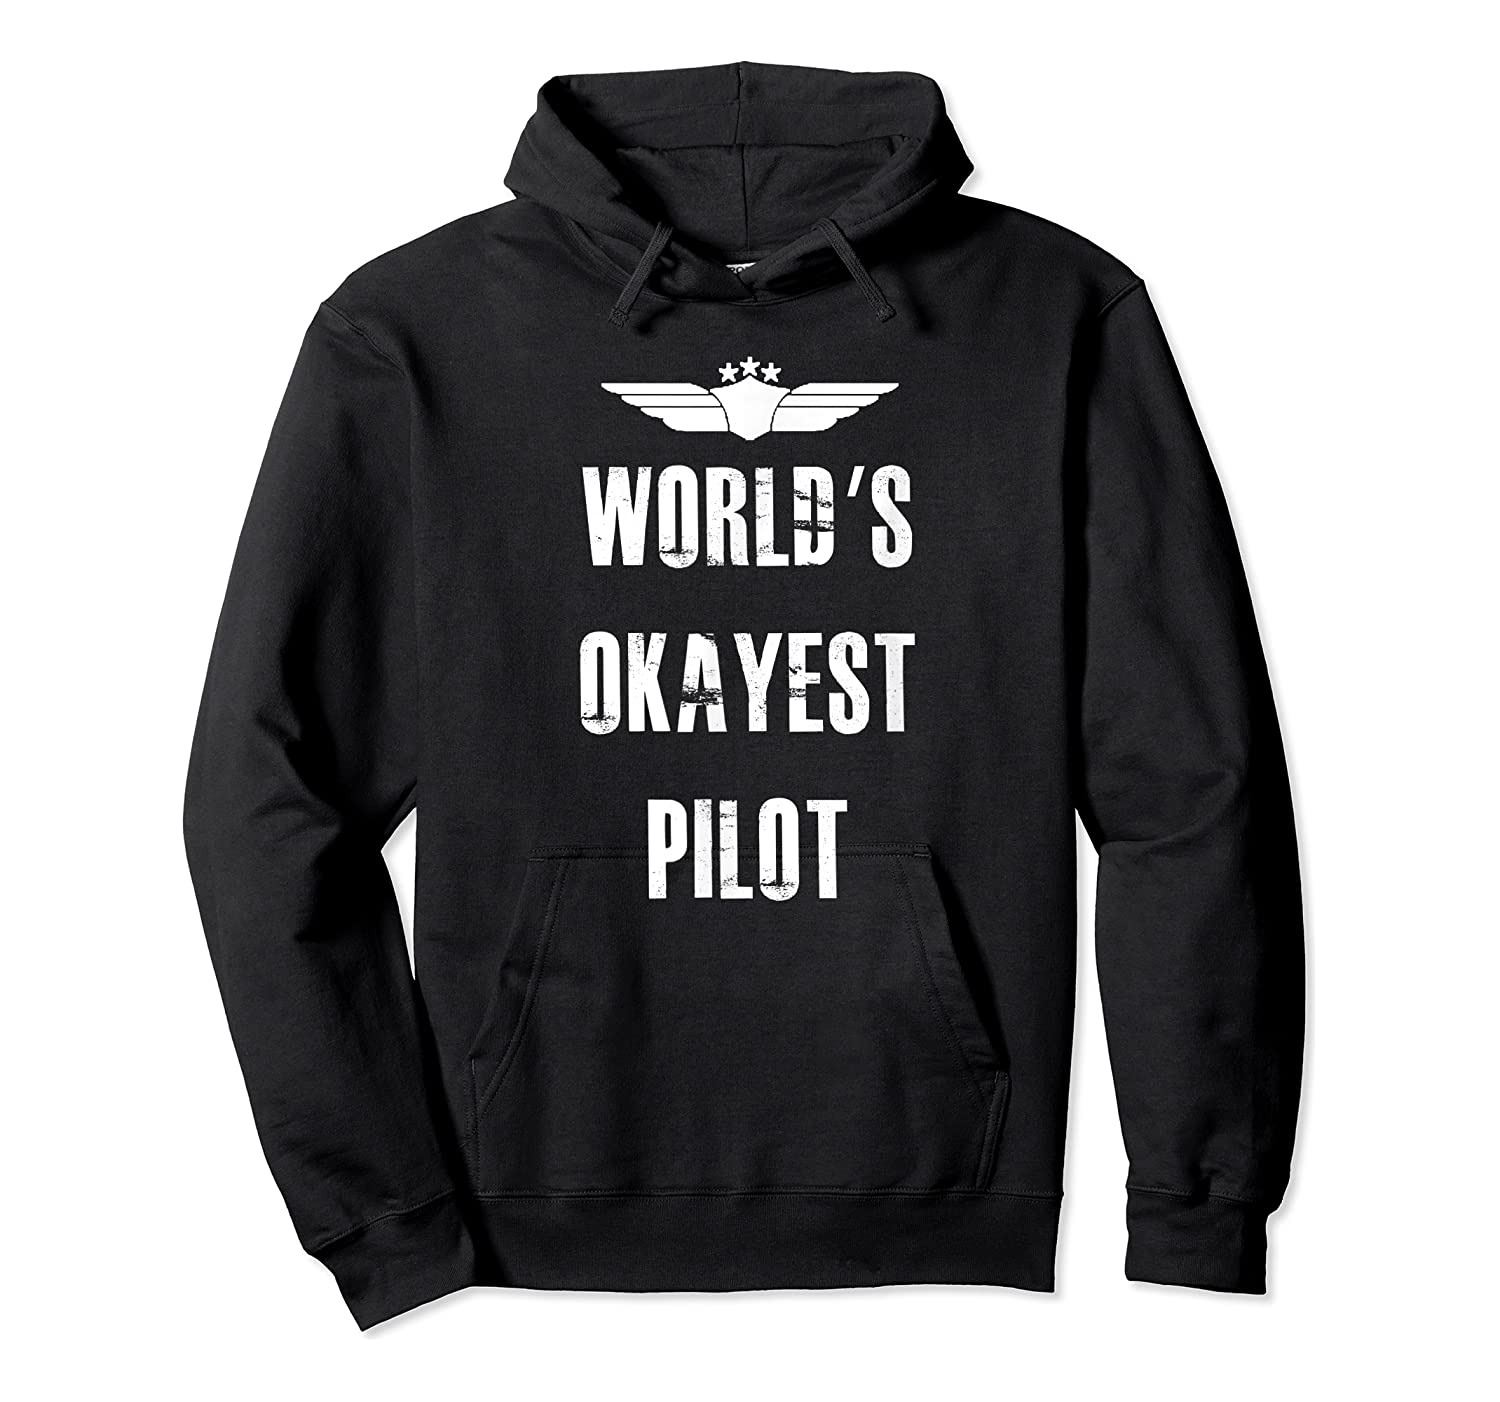 World's Okayest Pilot Funny Flying Aviation Shirts Unisex Pullover Hoodie